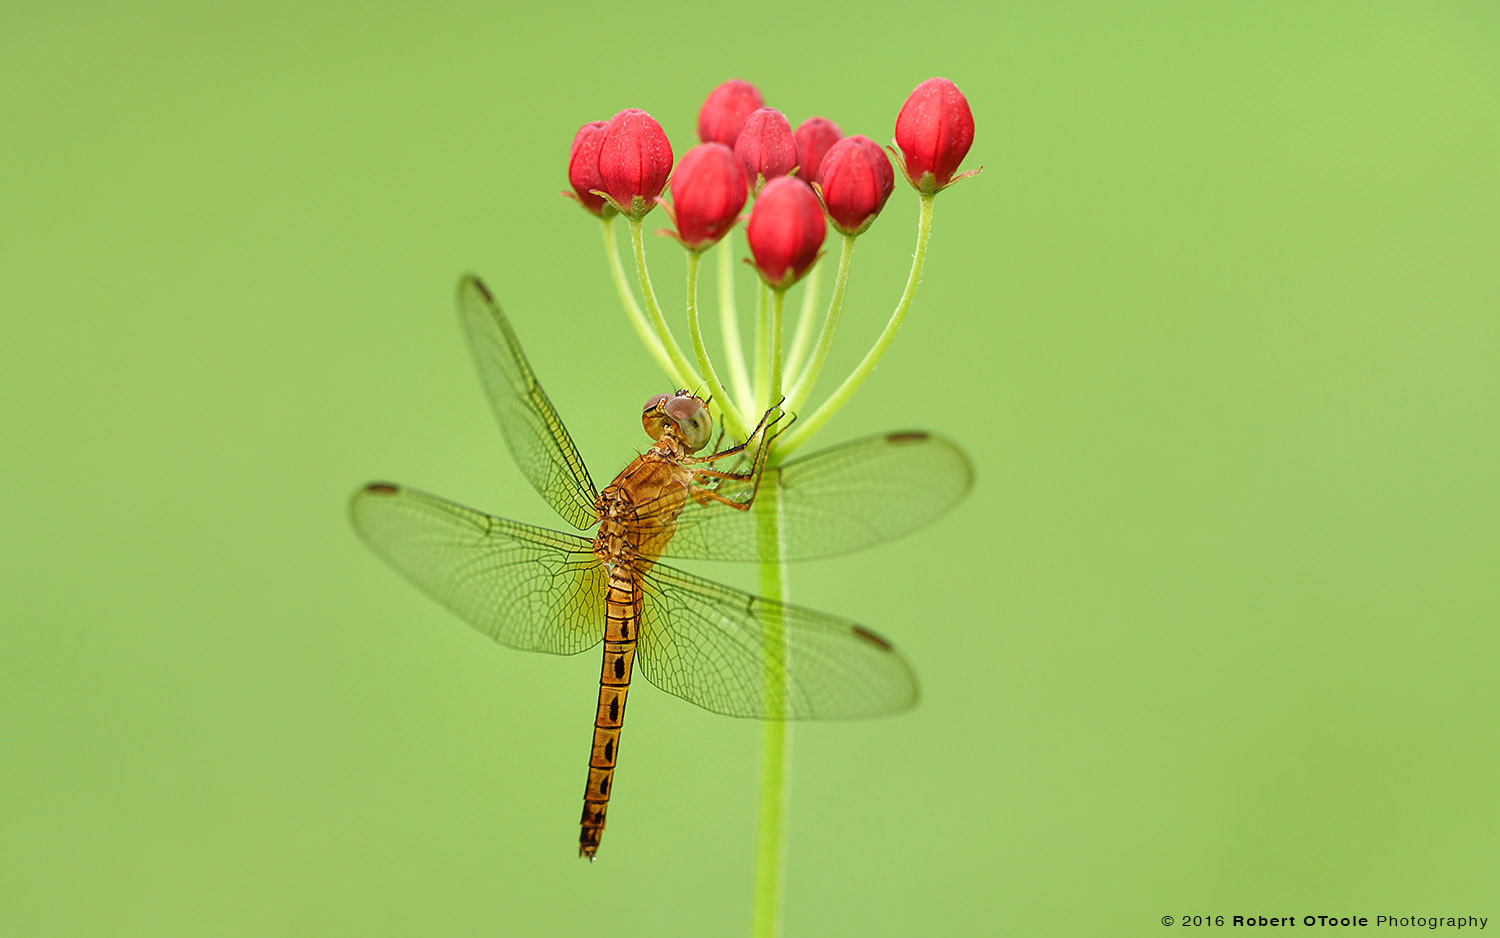 Golden Dragonfly on Bunch of Flower Buds